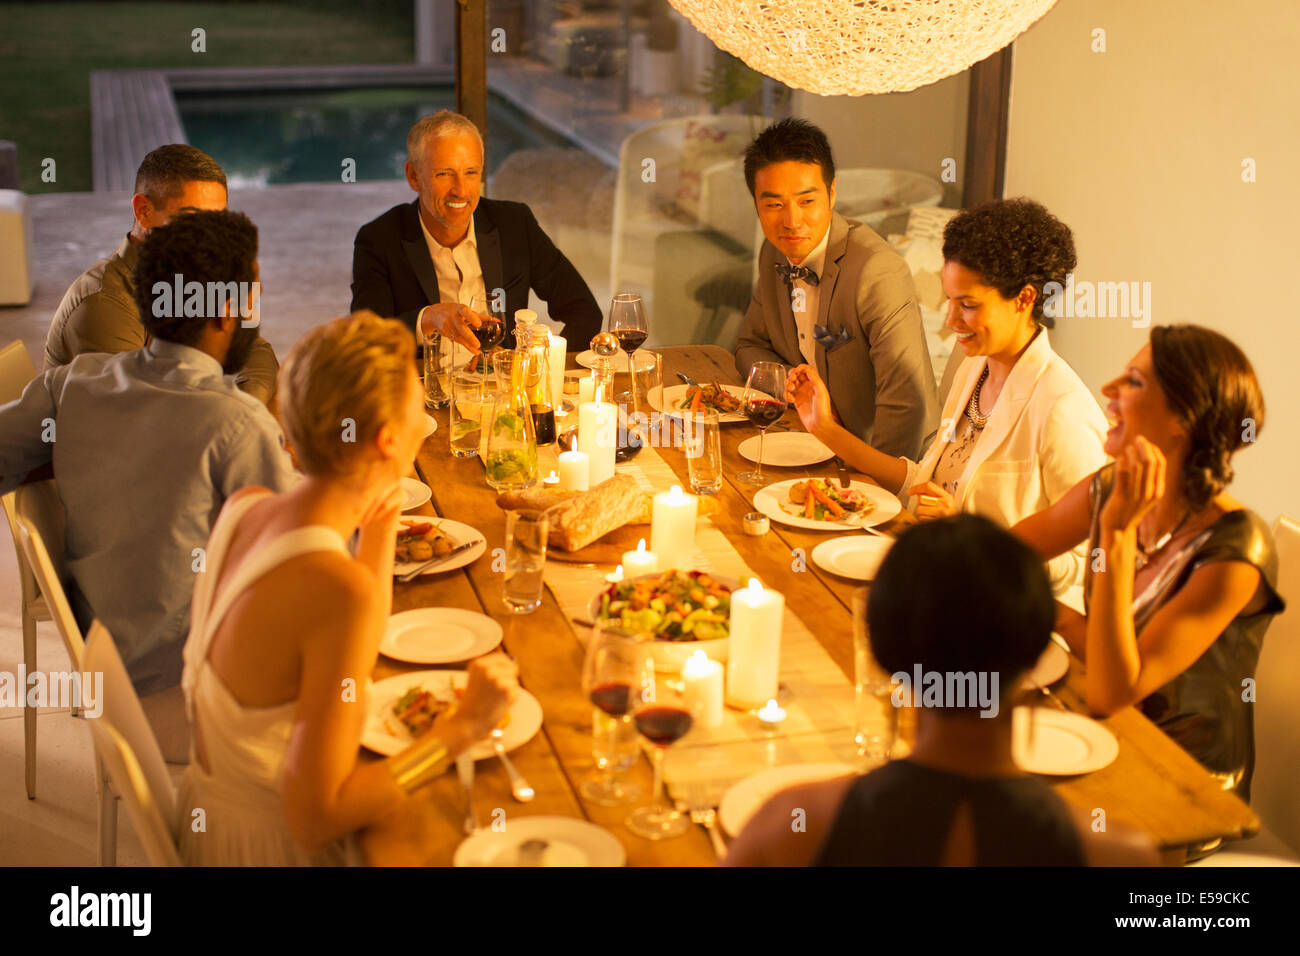 Les amis manger ensemble at dinner party Photo Stock